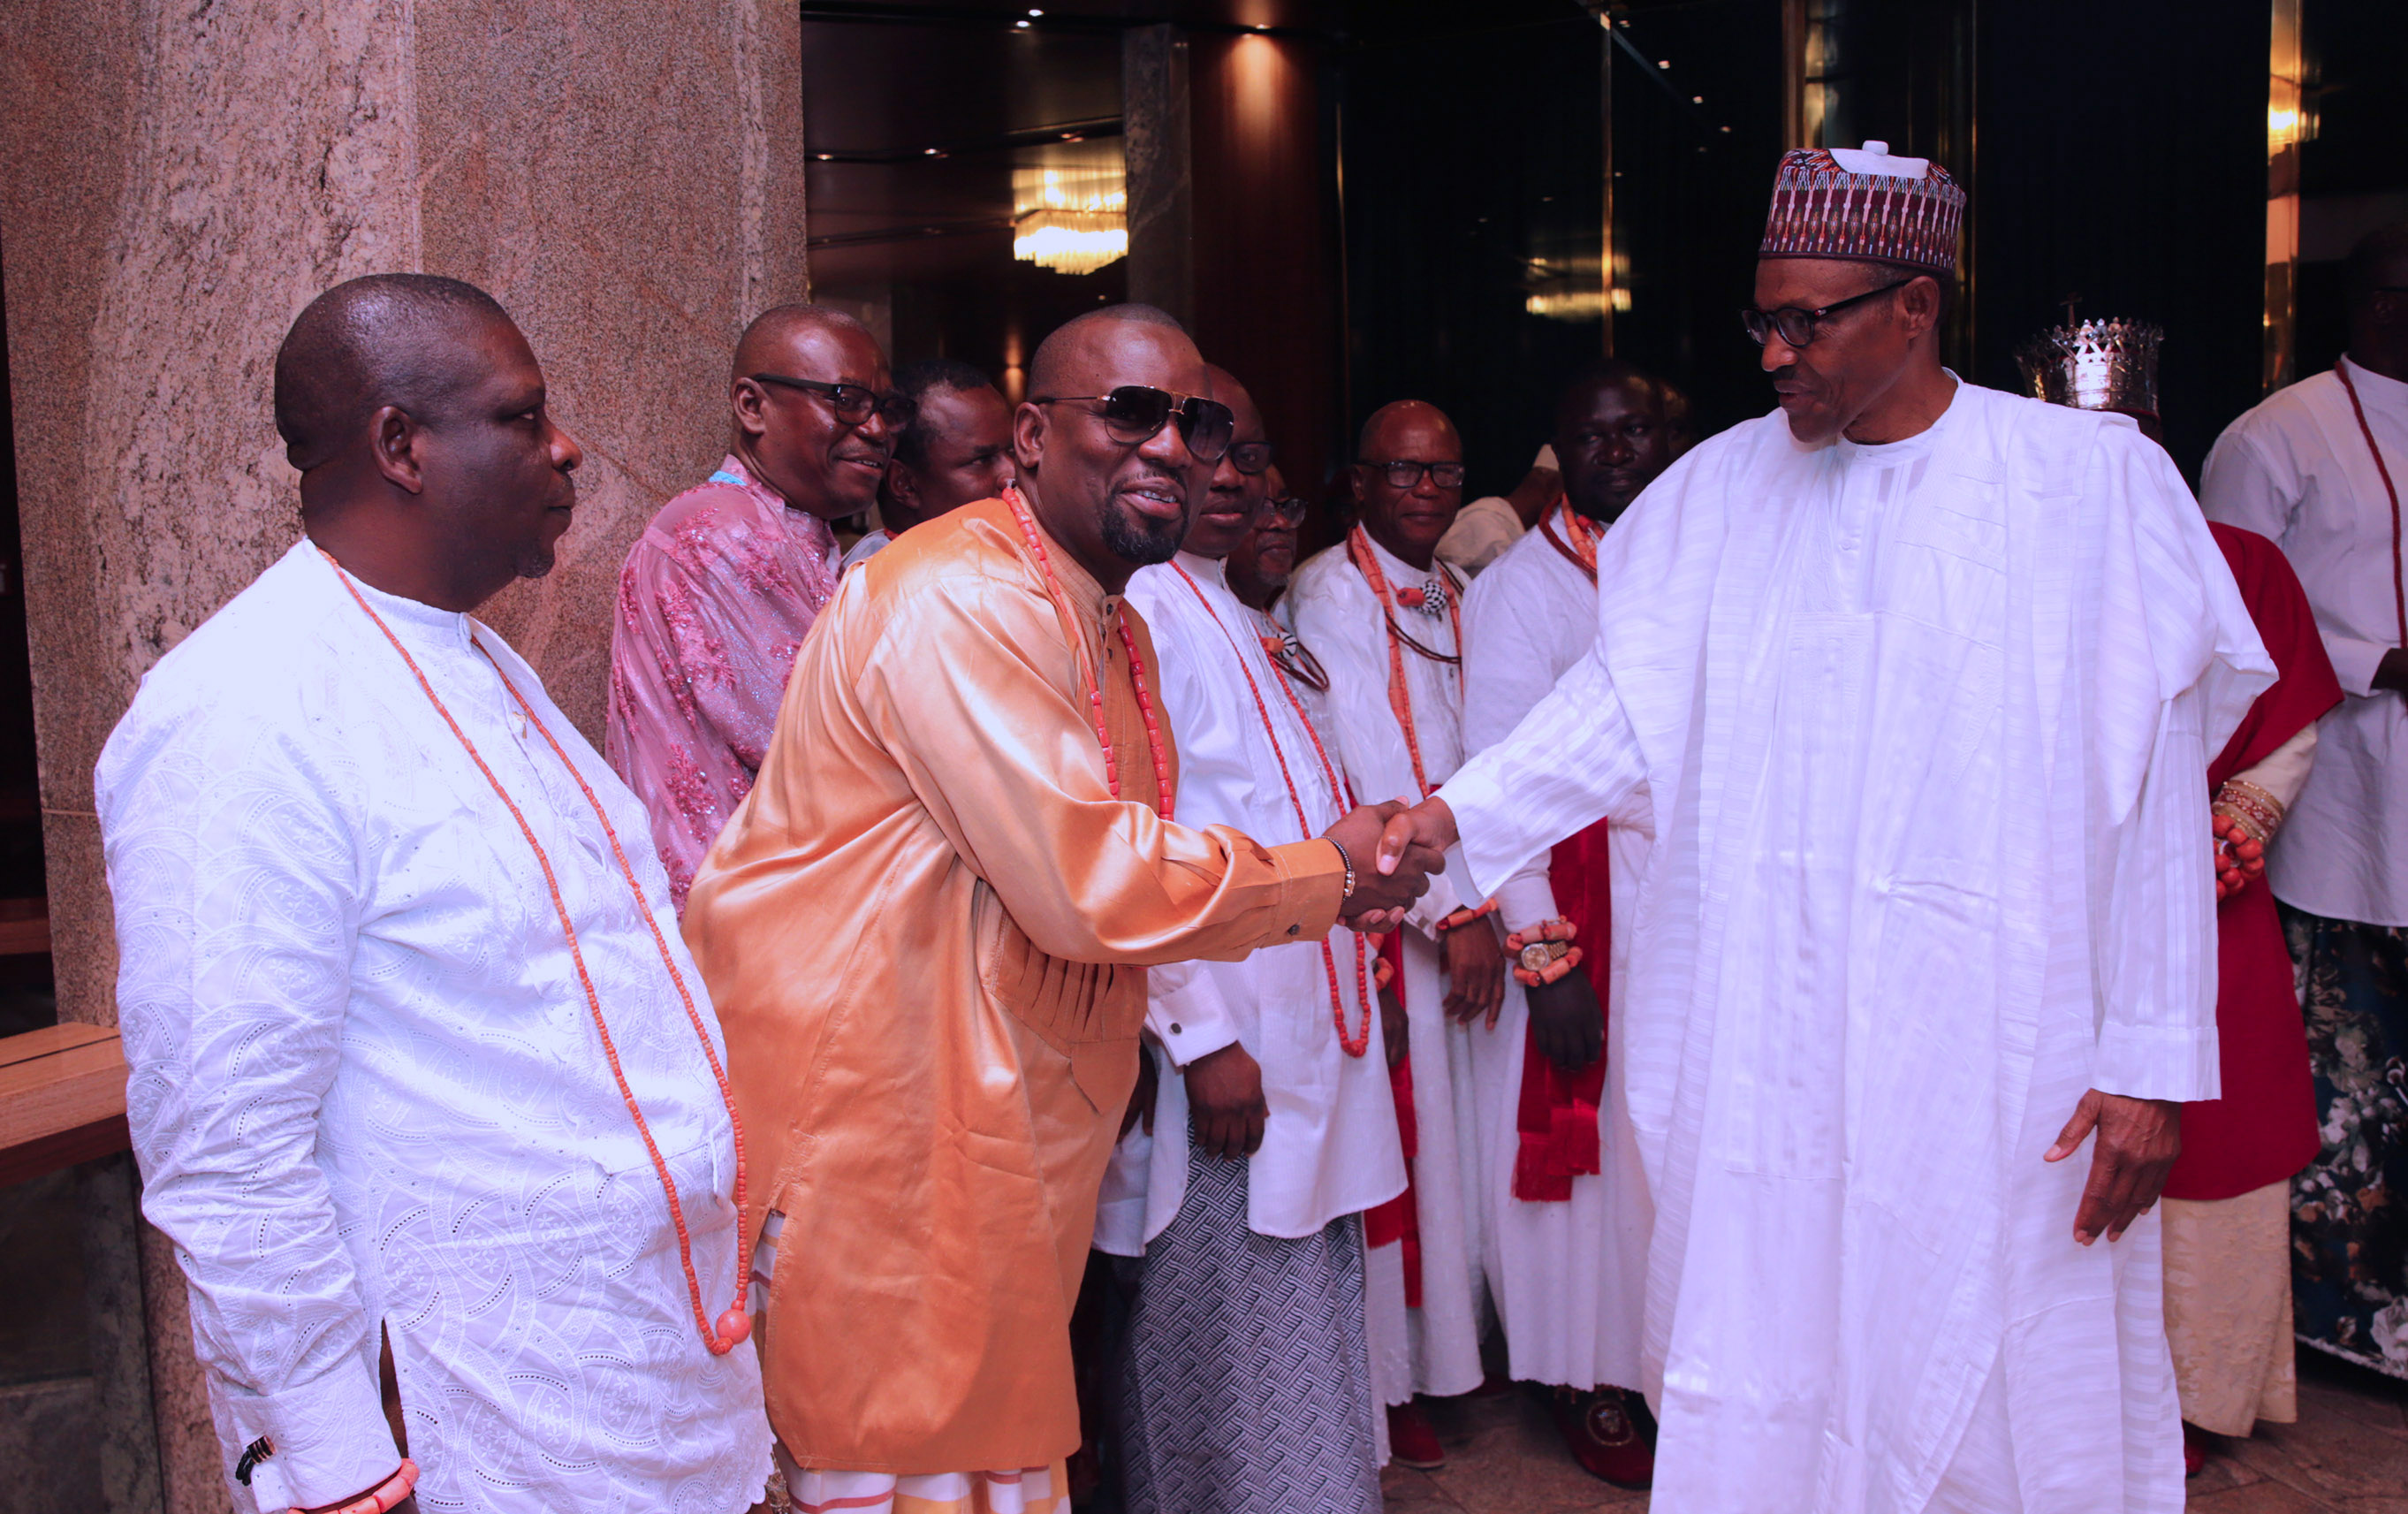 http://www.thecapital.ng/wp-content/uploads/2018/02/PRESIDENT-BUHARI-RECEIVE-OLU-OF-WARRI-2A.jpg